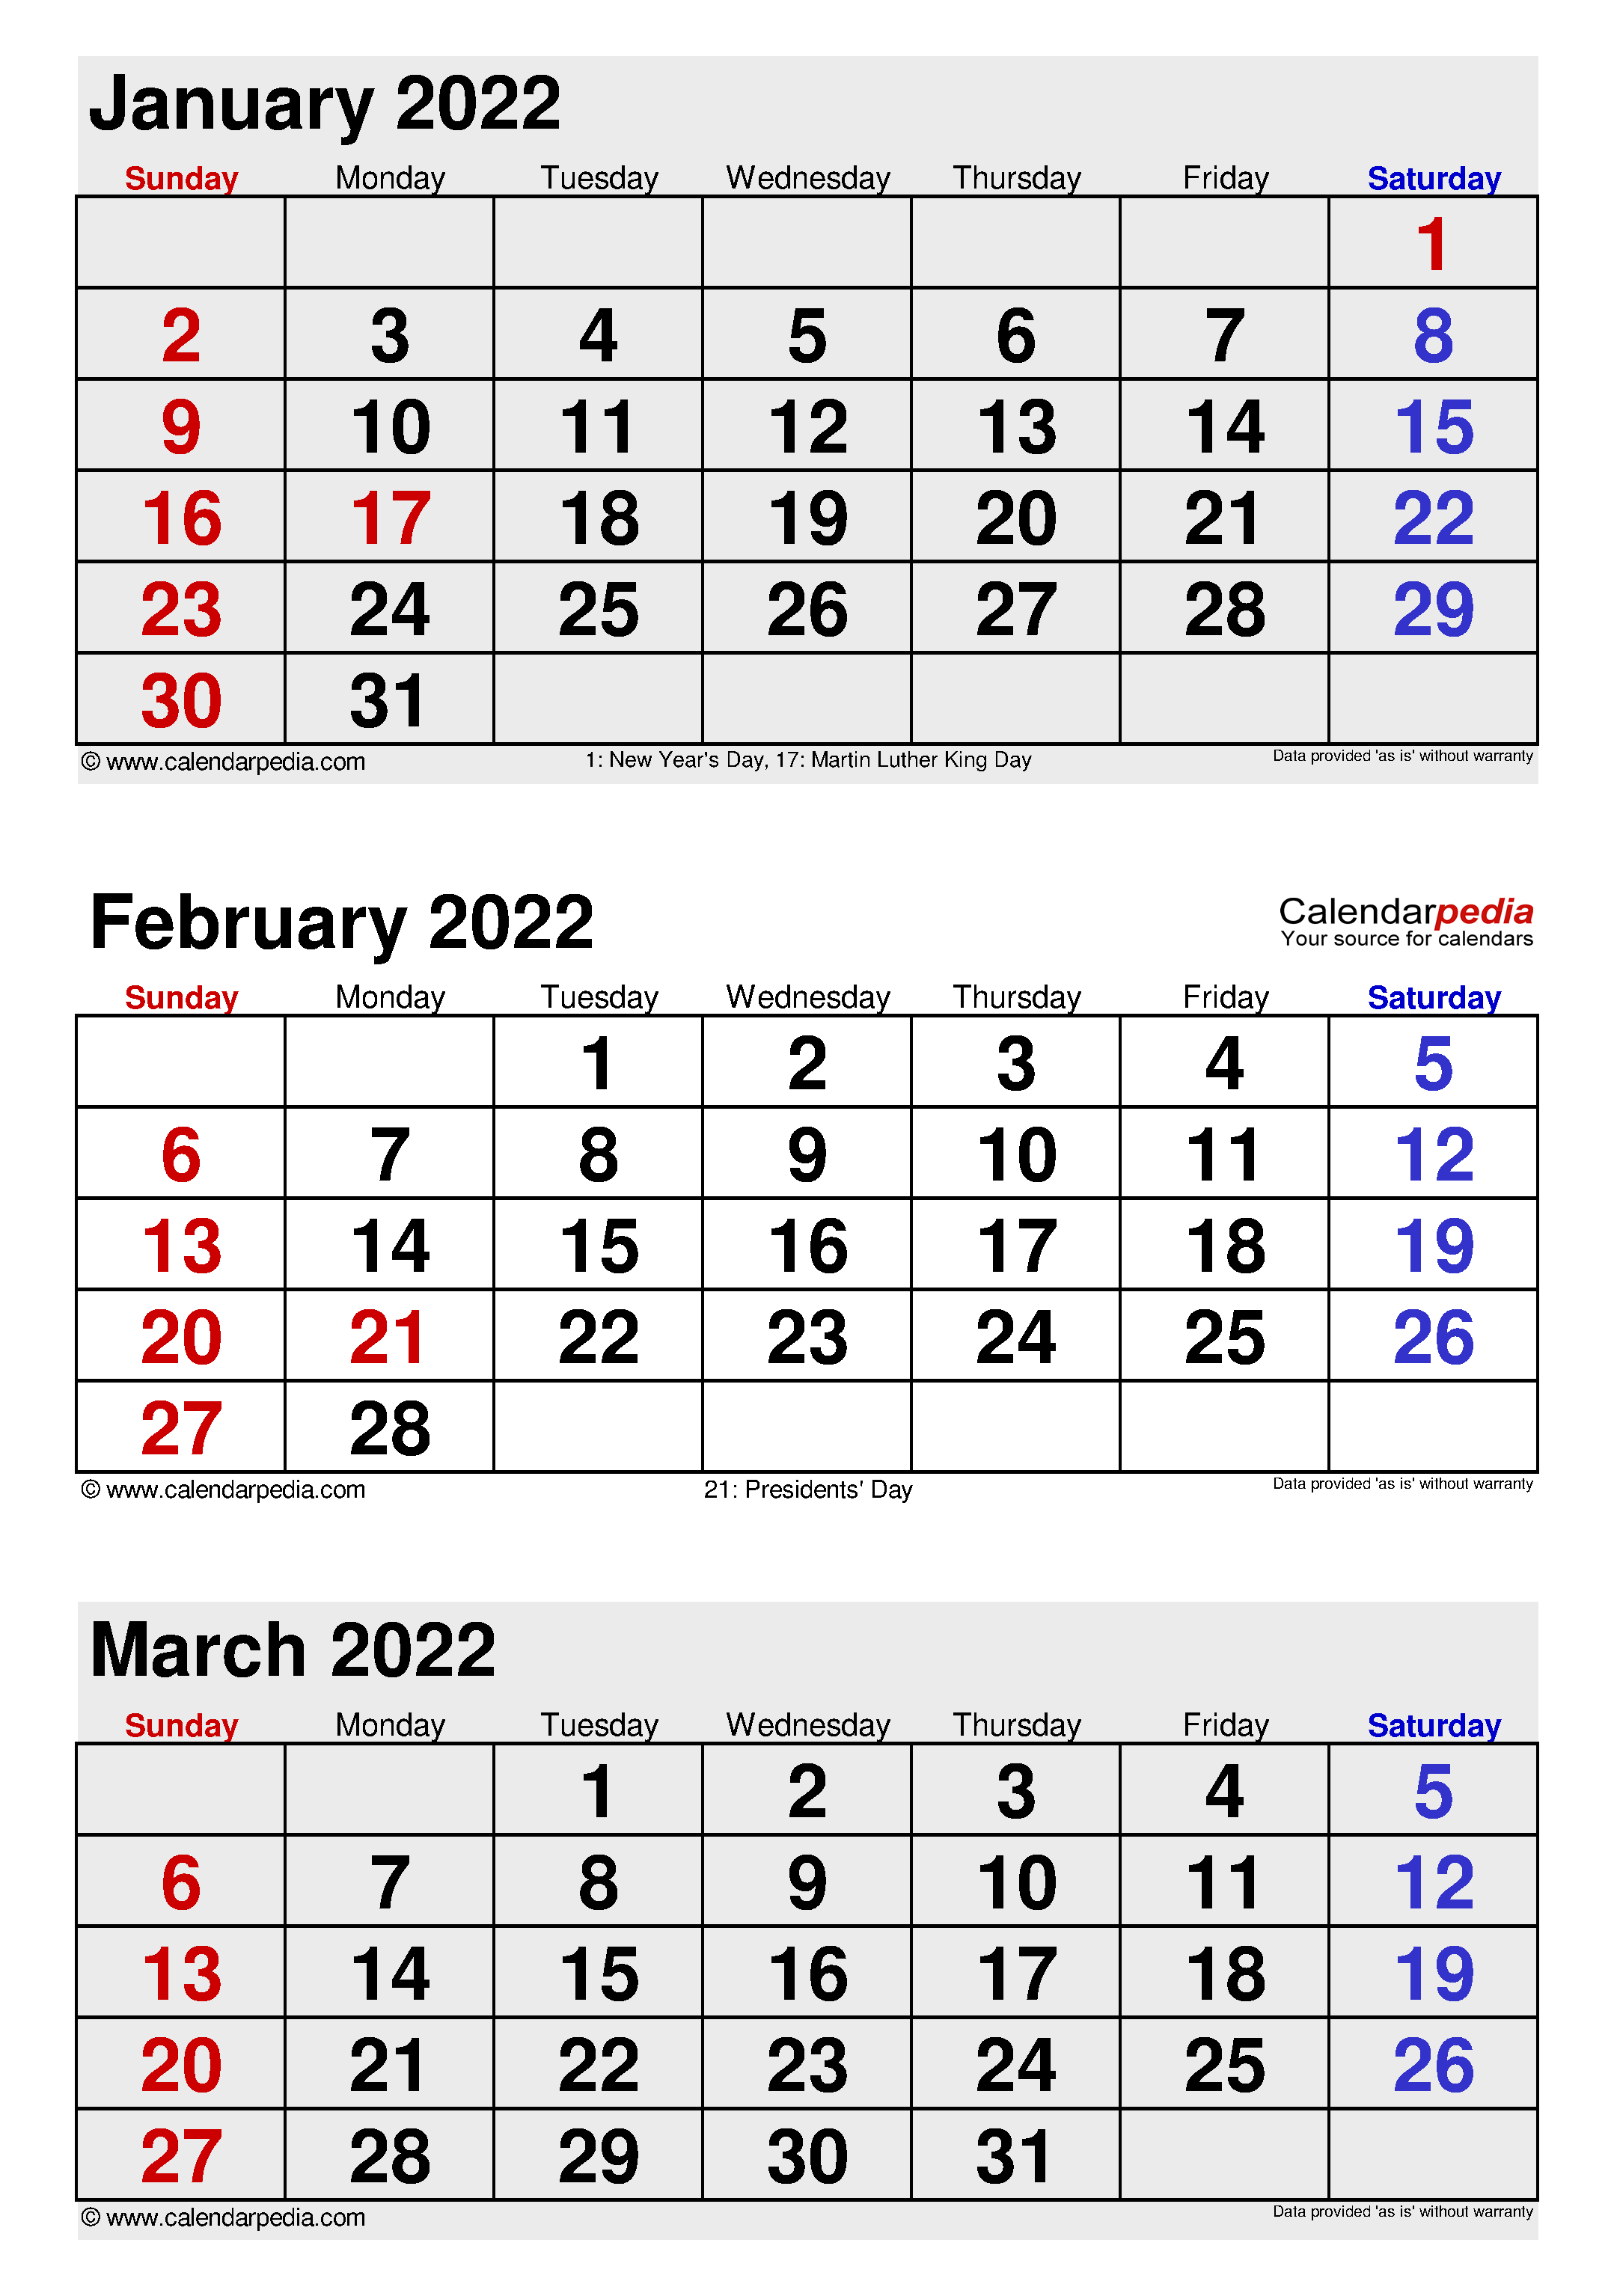 February 2022 Calendar | Templates For Word, Excel And Pdf Throughout Printable February 2022 Calendar